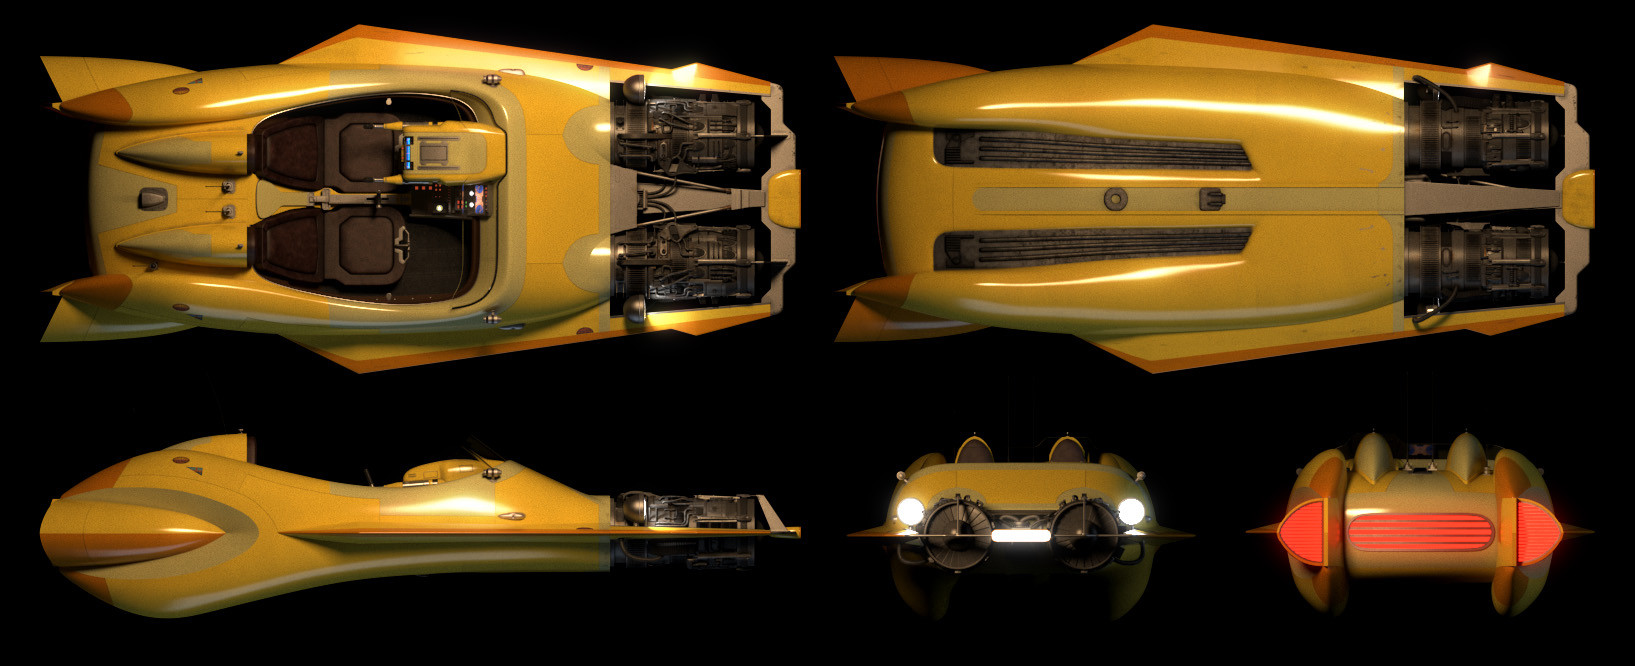 Zachary brackin speeder orthographic